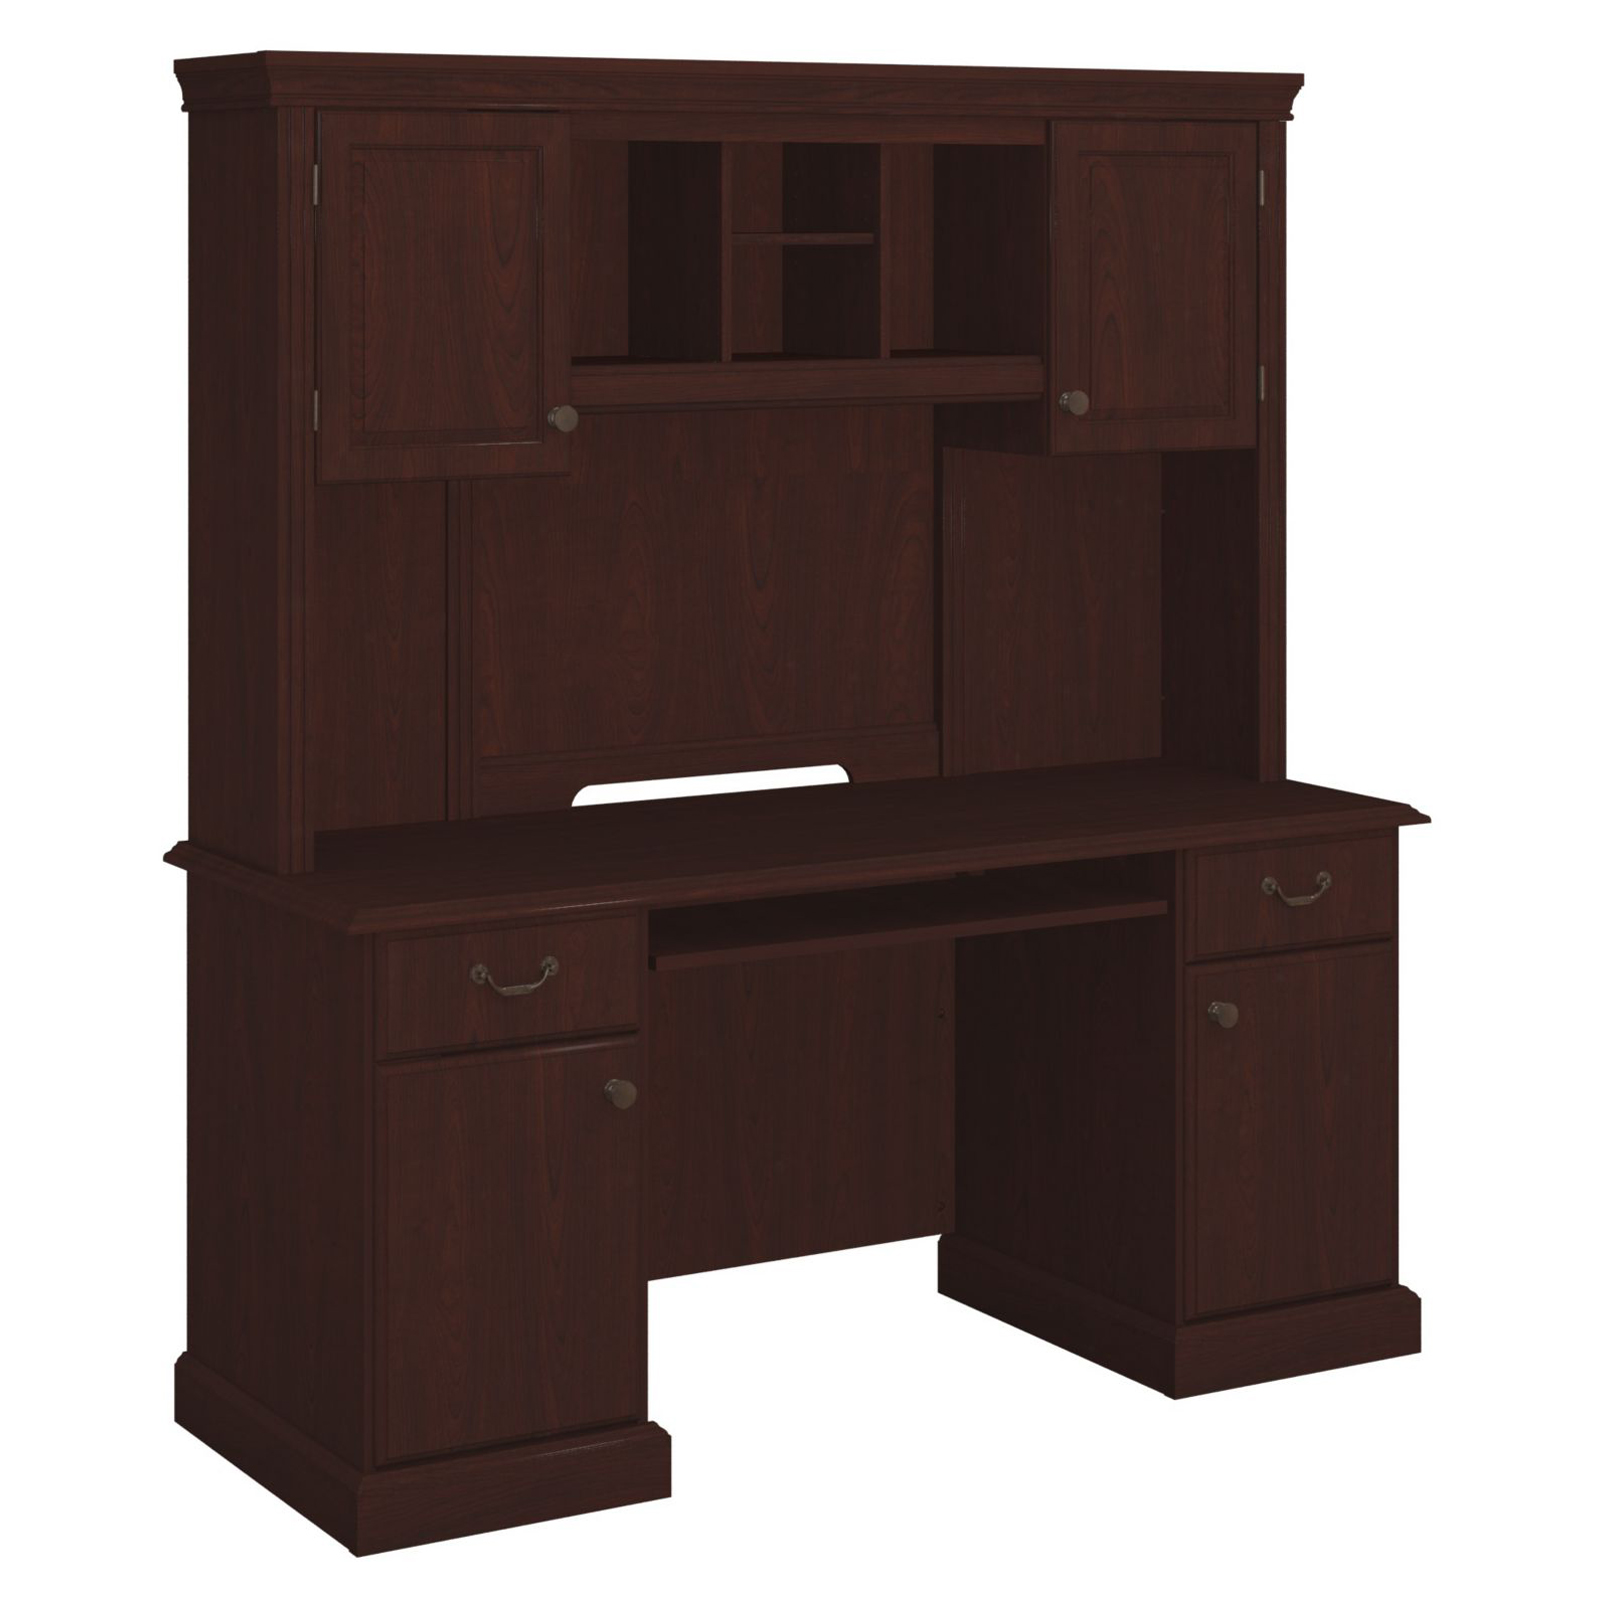 Bestar Solay L Shaped Desk With Lateral File Cabinet And Bookcase Hayneedle